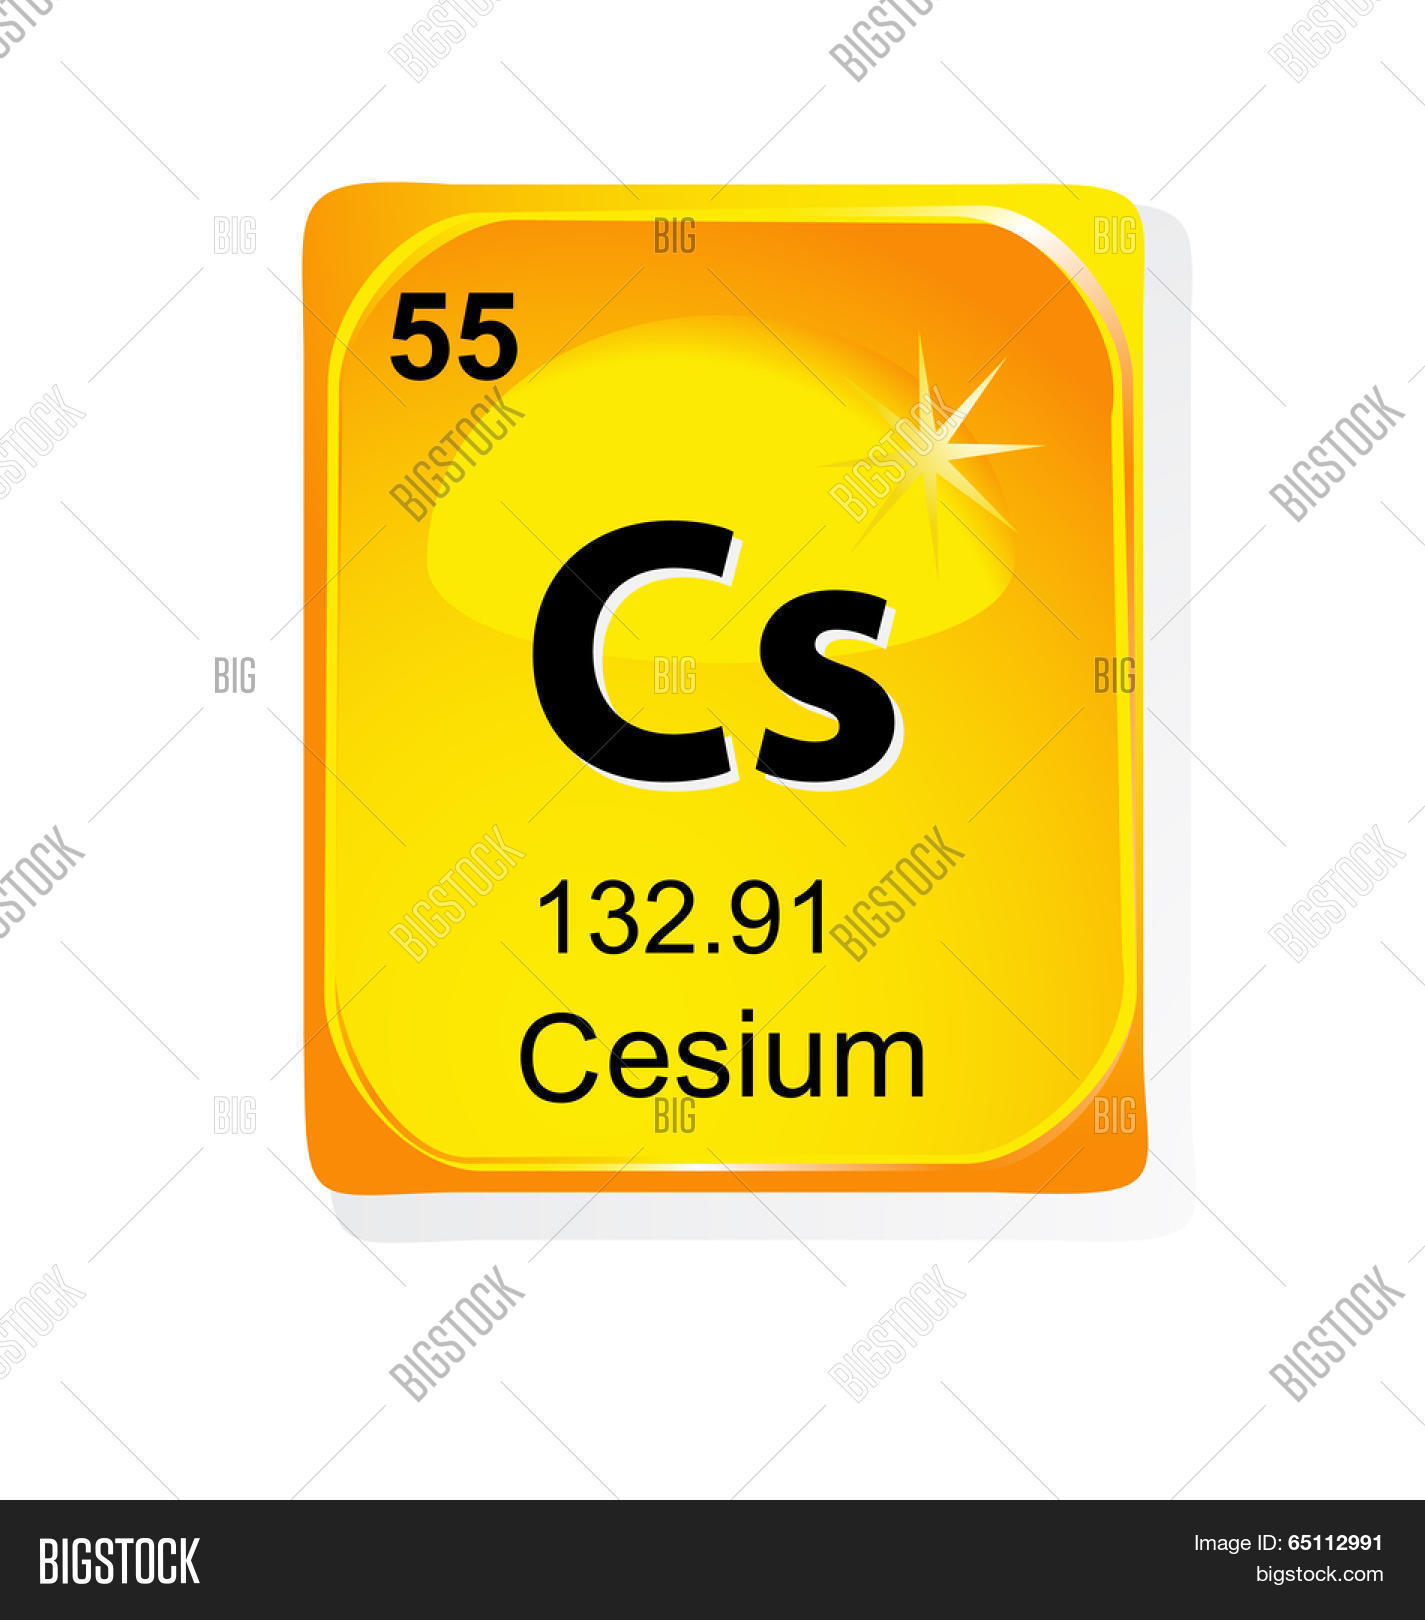 Cesium chemical vector photo free trial bigstock cesium chemical element with atomic number symbol and weight urtaz Gallery